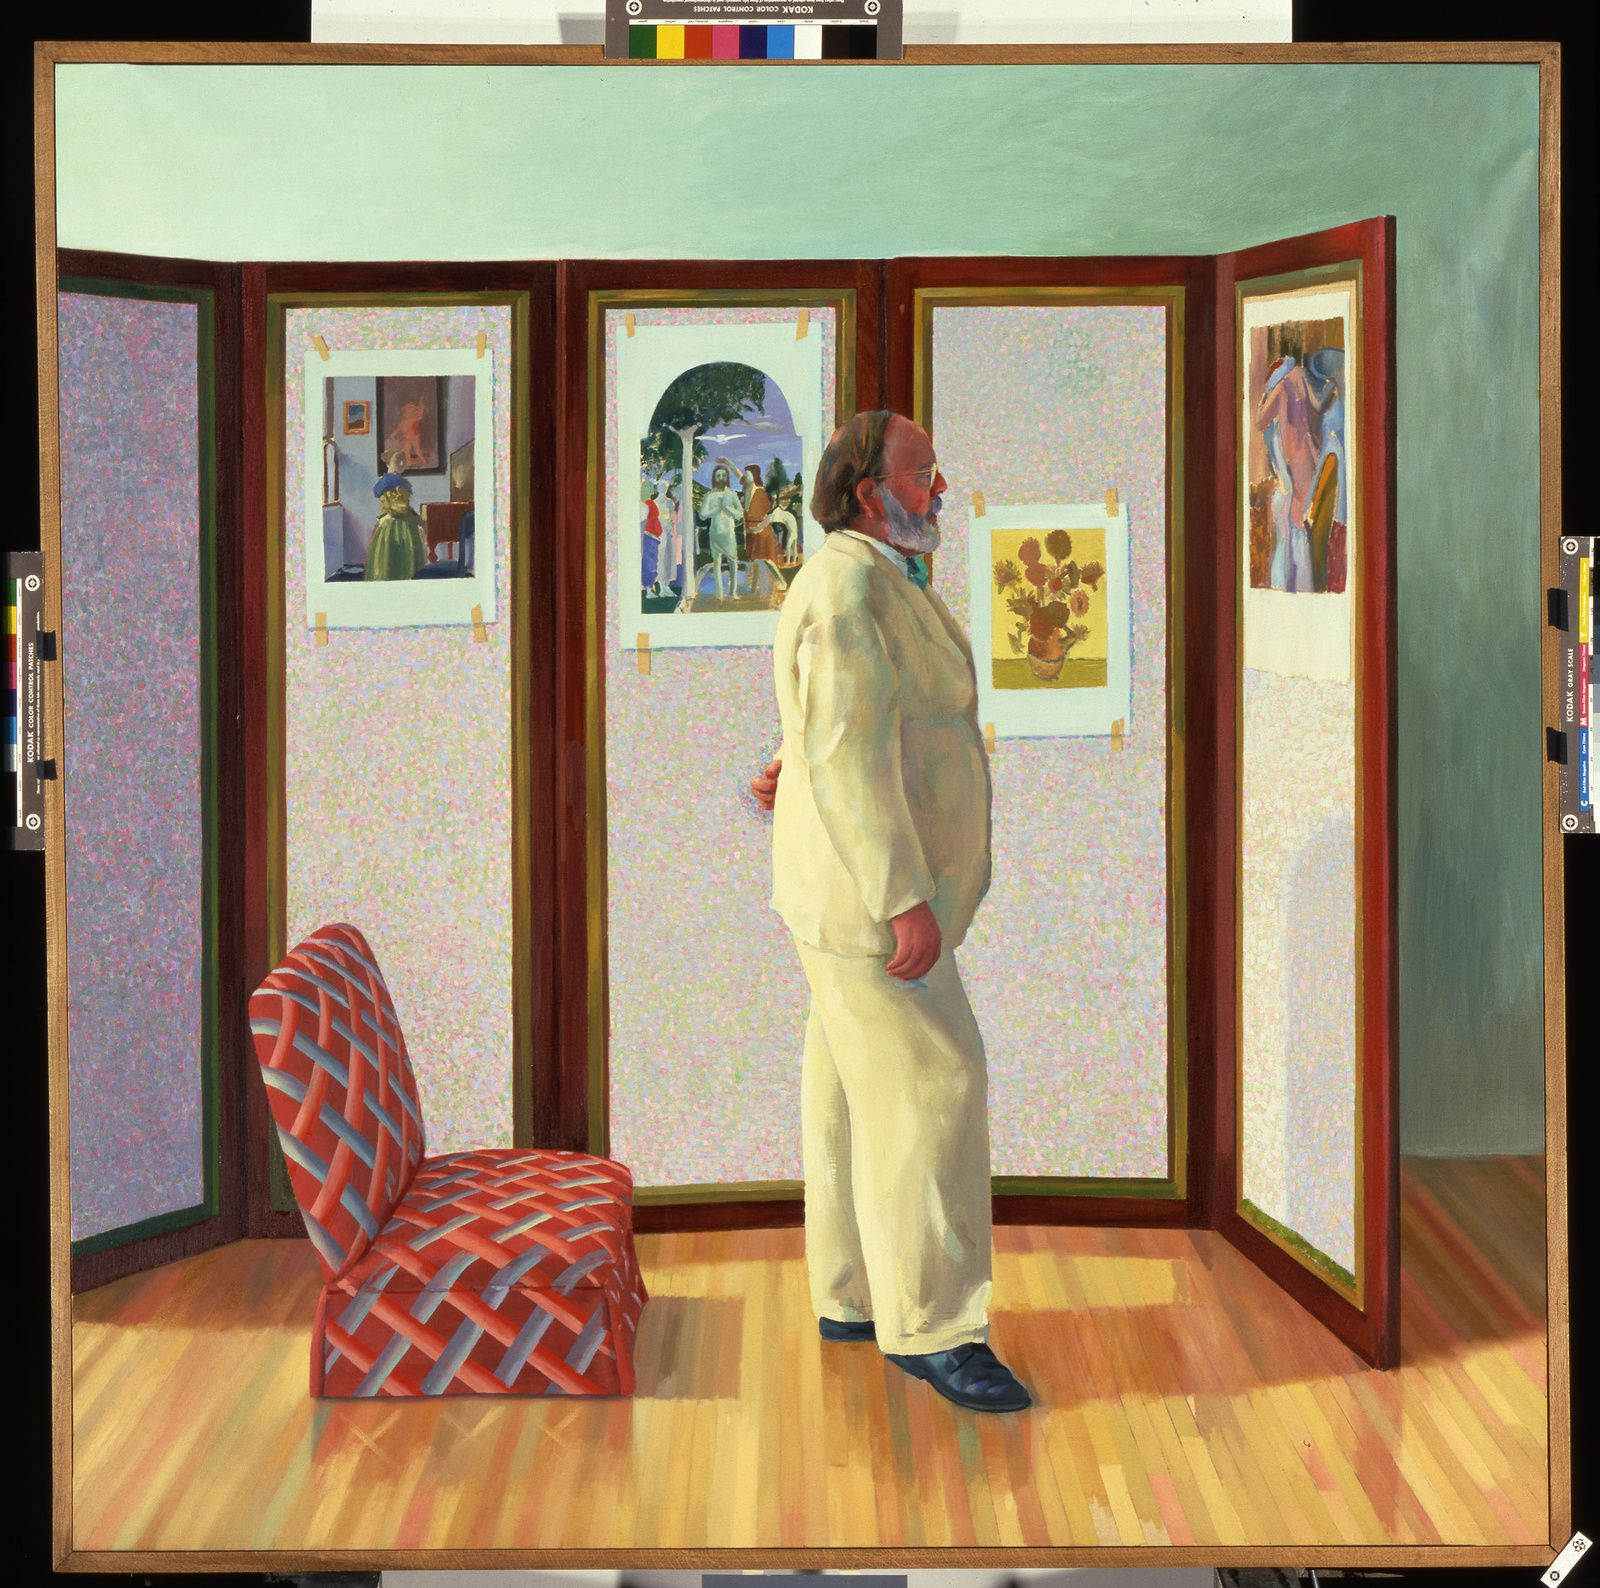 """Looking at Pictures on a screen"", 1977 de David HOCKNEY"